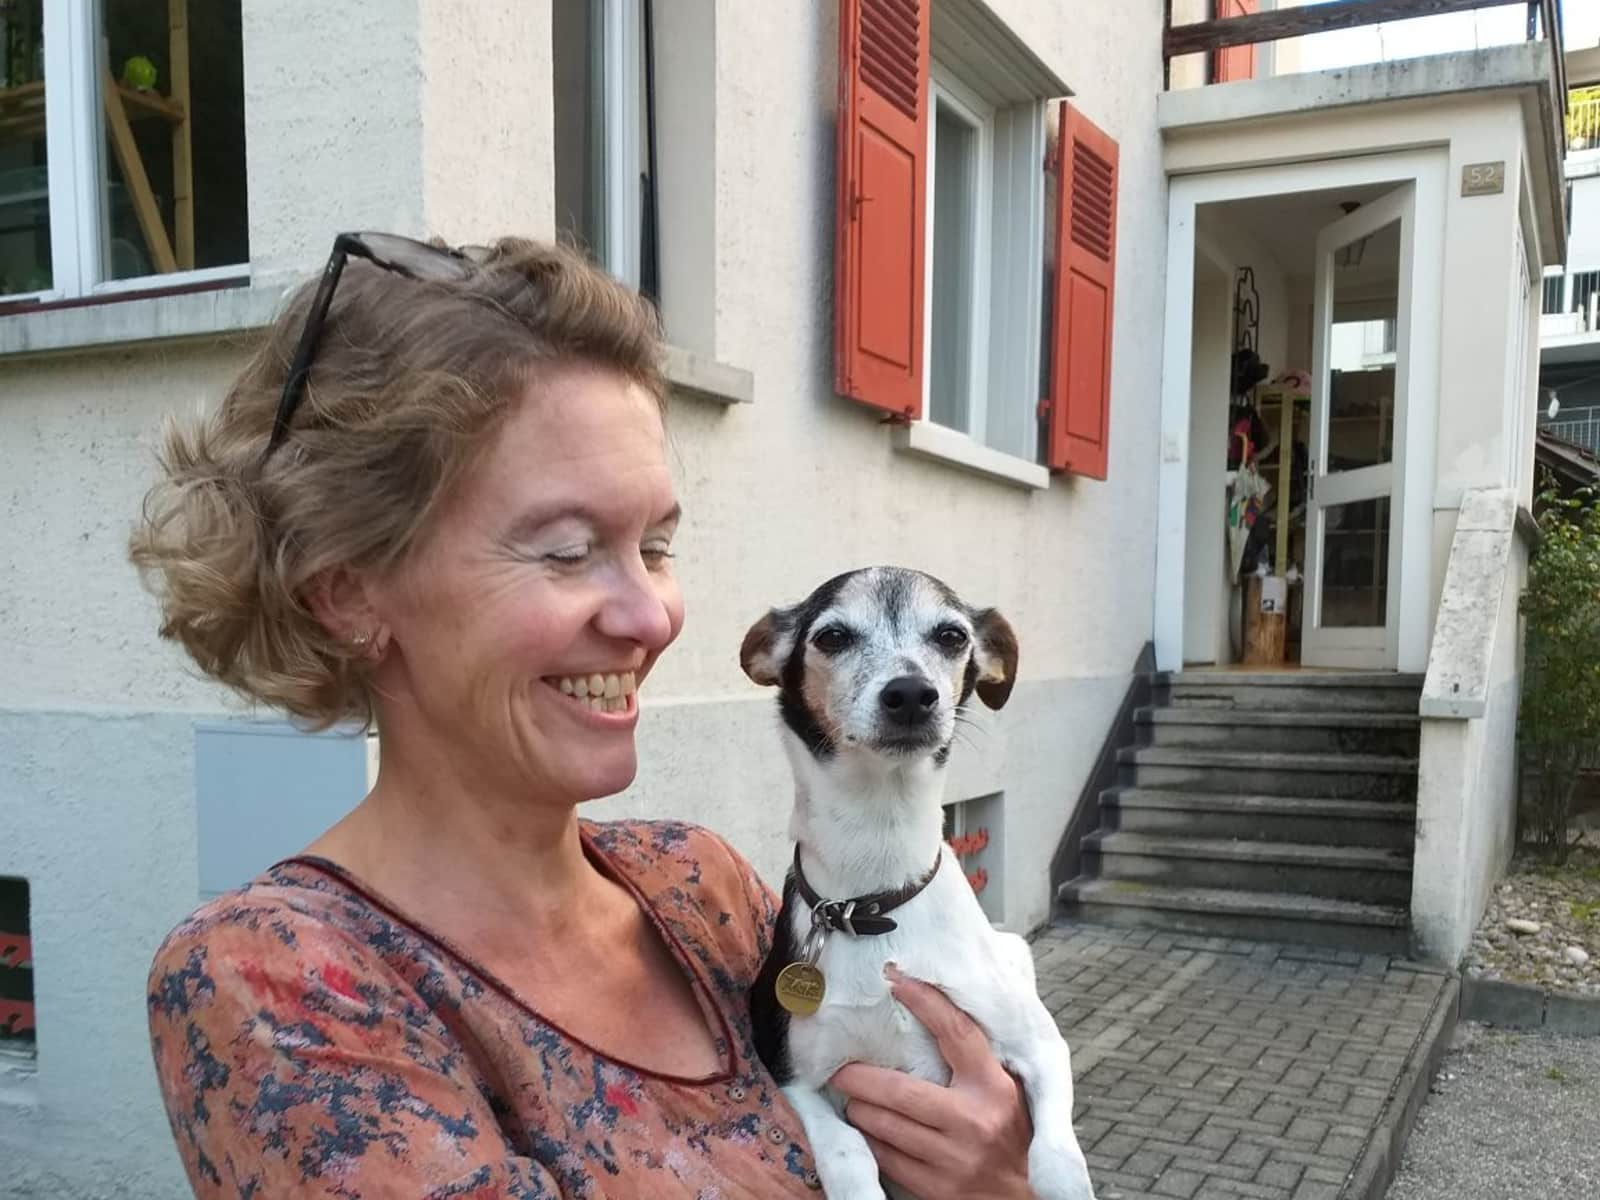 Nelli from Luzern, Switzerland